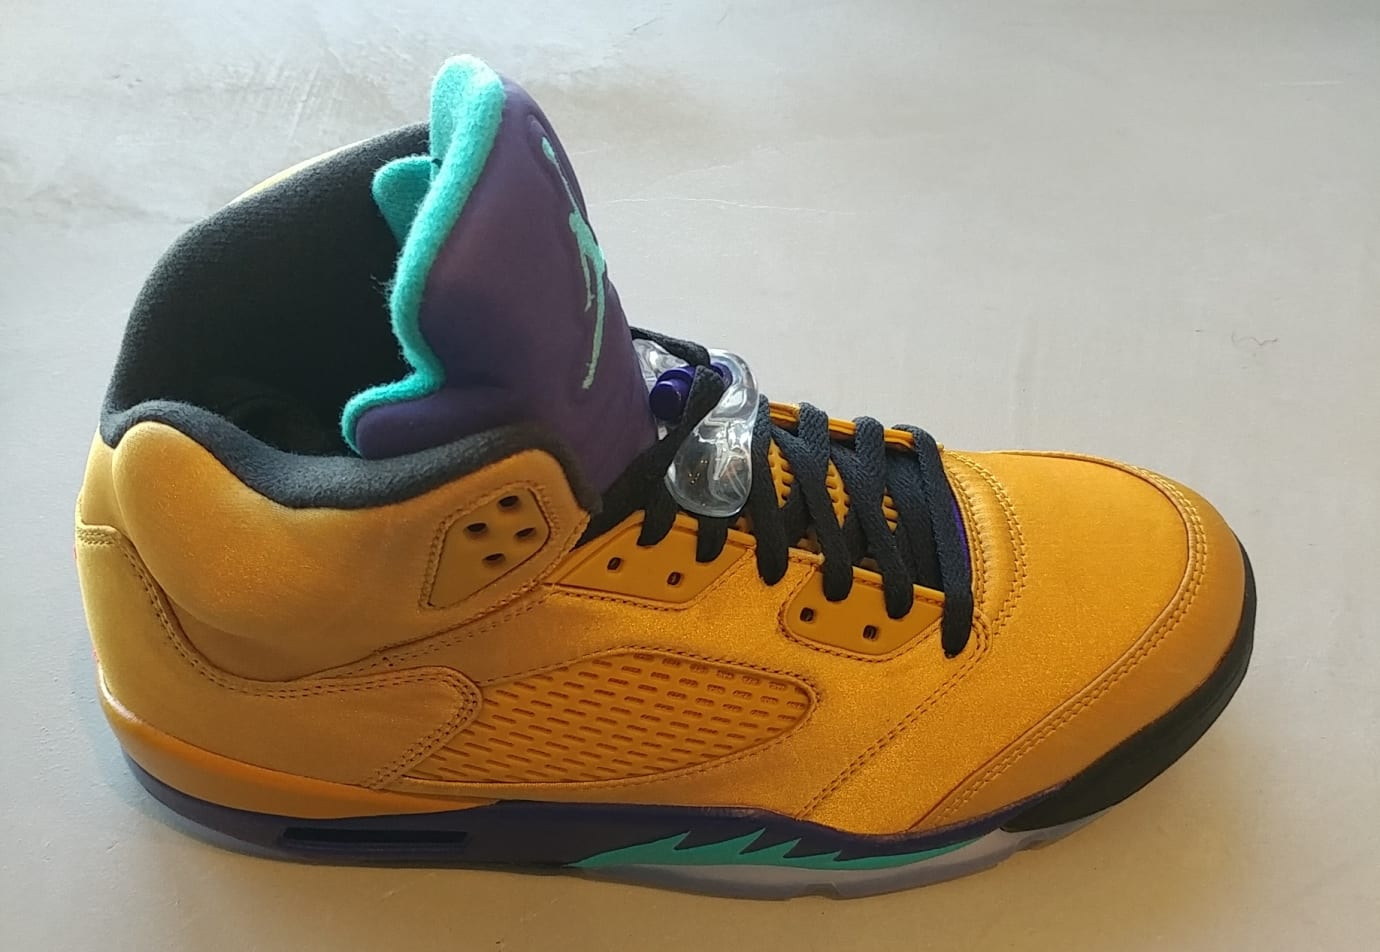 new style e1d3e 5c3f2 Air Jordan 5 NRG 'Fresh Prince' Will Smith Unboxing | Sole ...